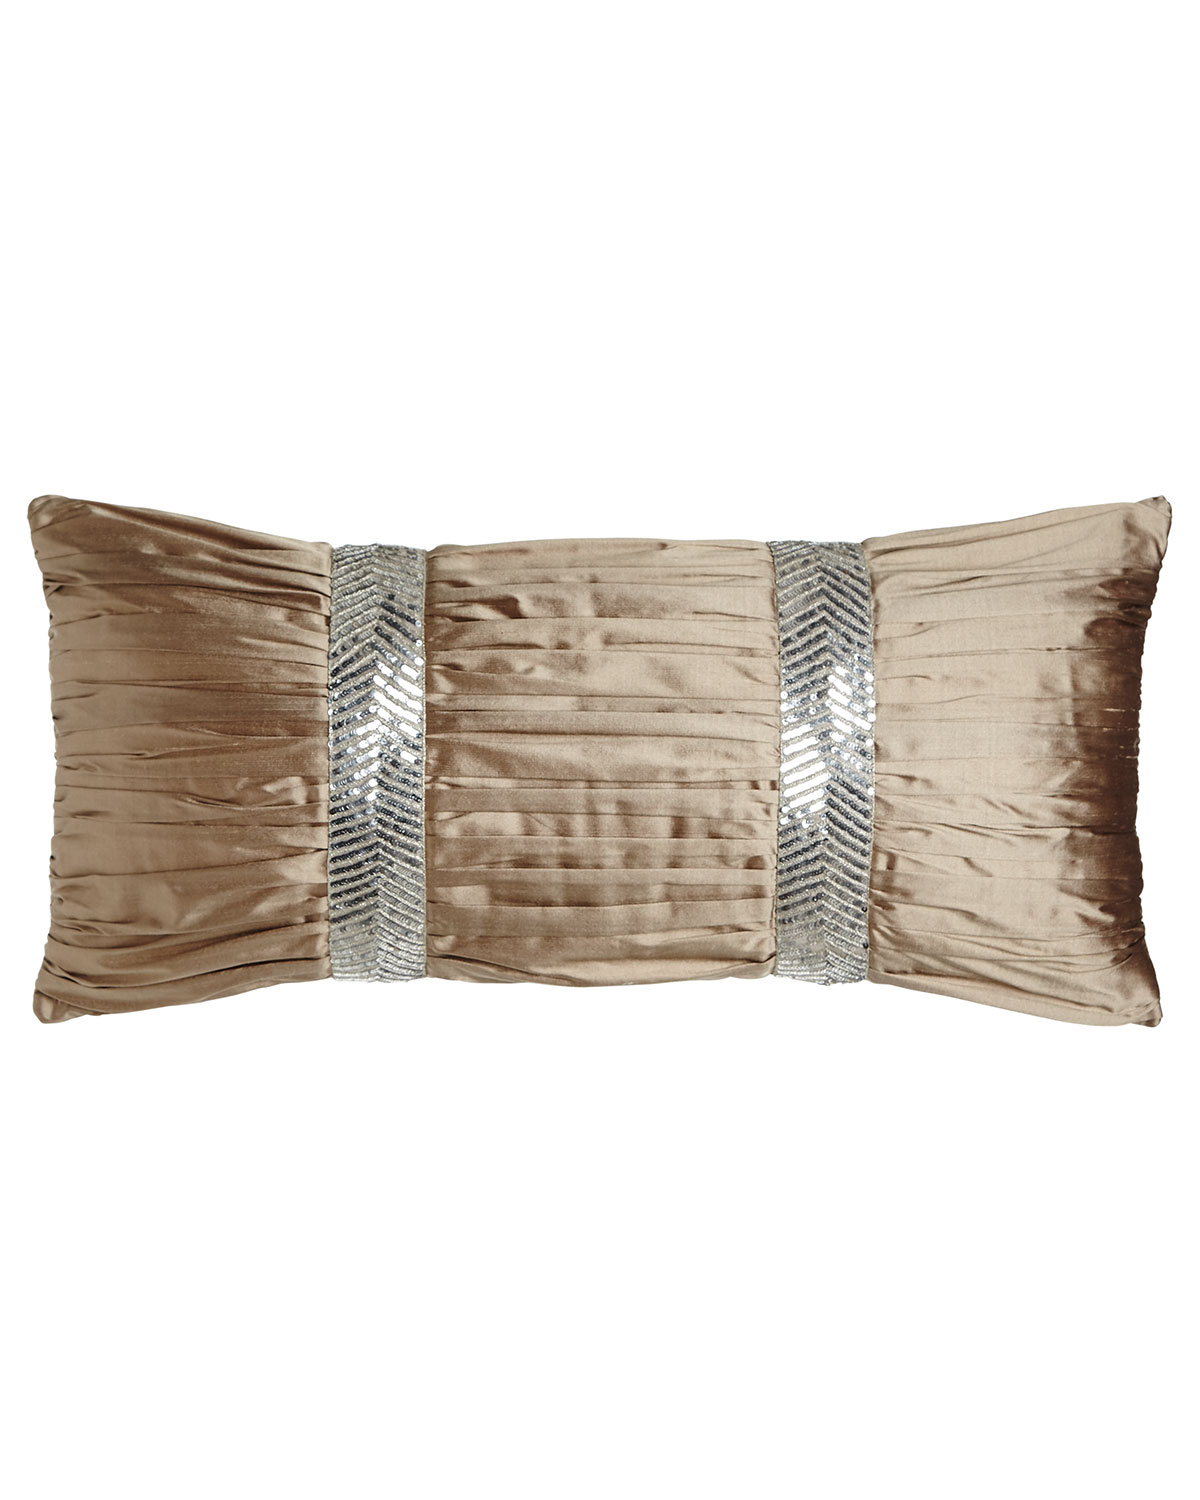 Dian Austin Couture Home Gretta Ruched Silk Pillow 12 Quot X 26 Quot